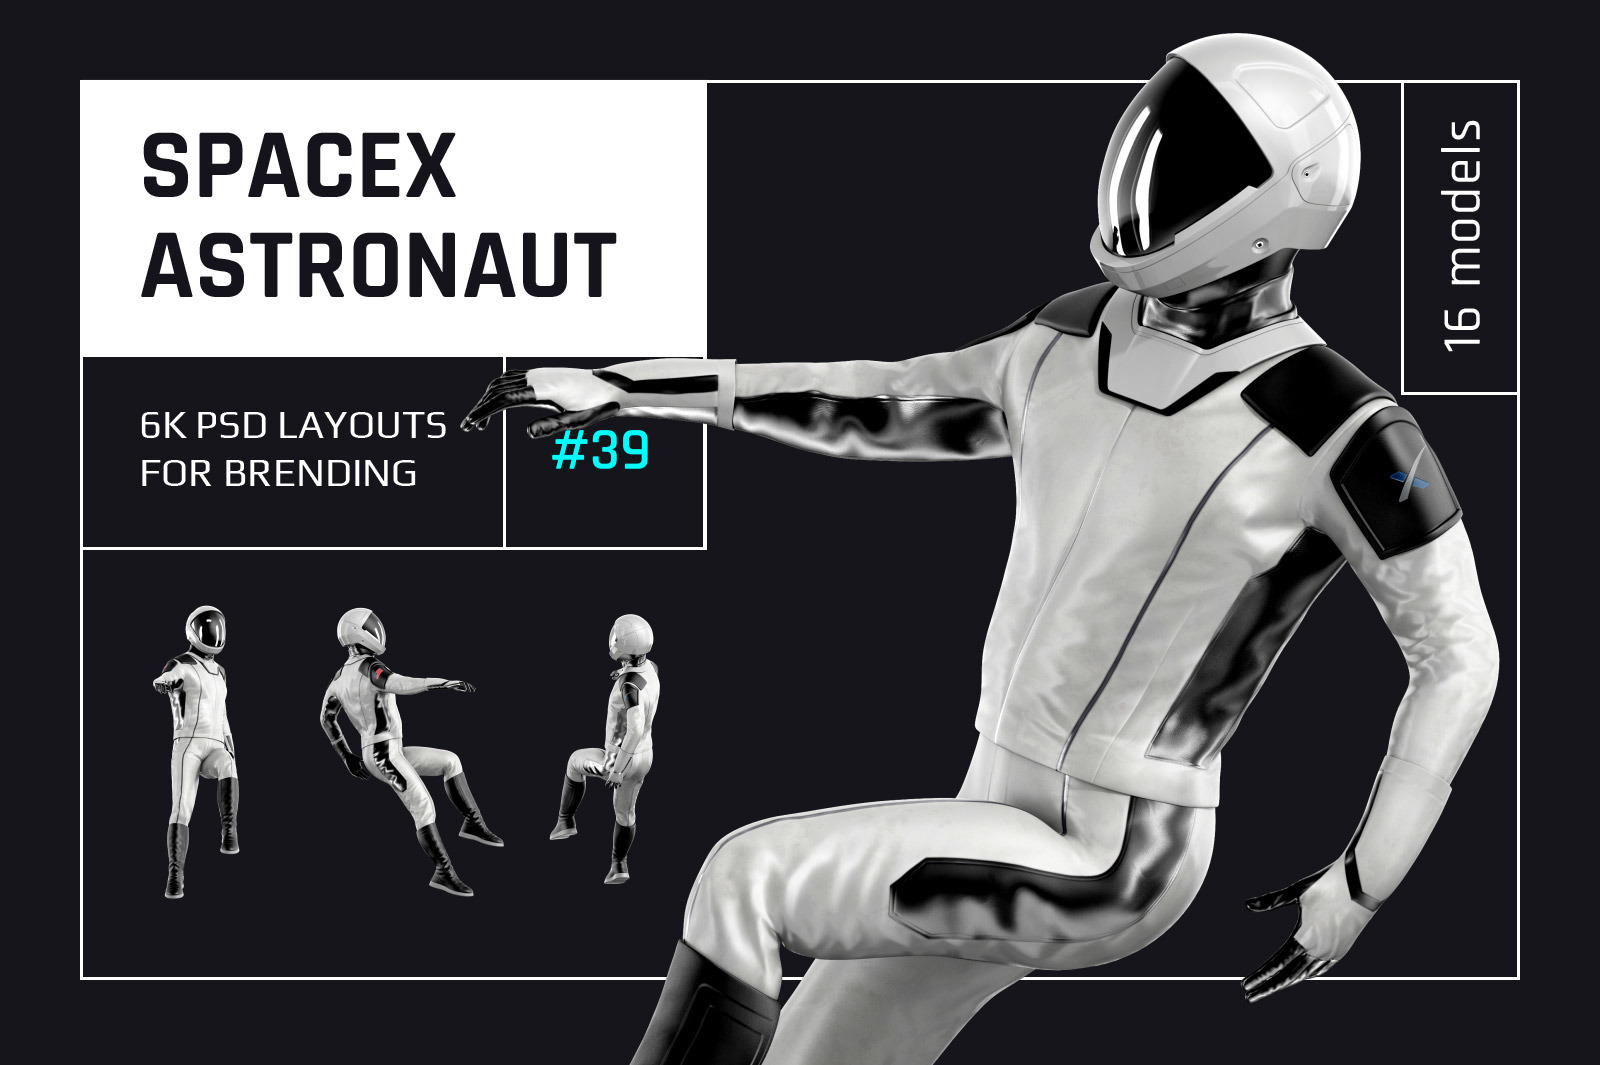 PSD Mockup 3D model SpaceX Astronaut #39